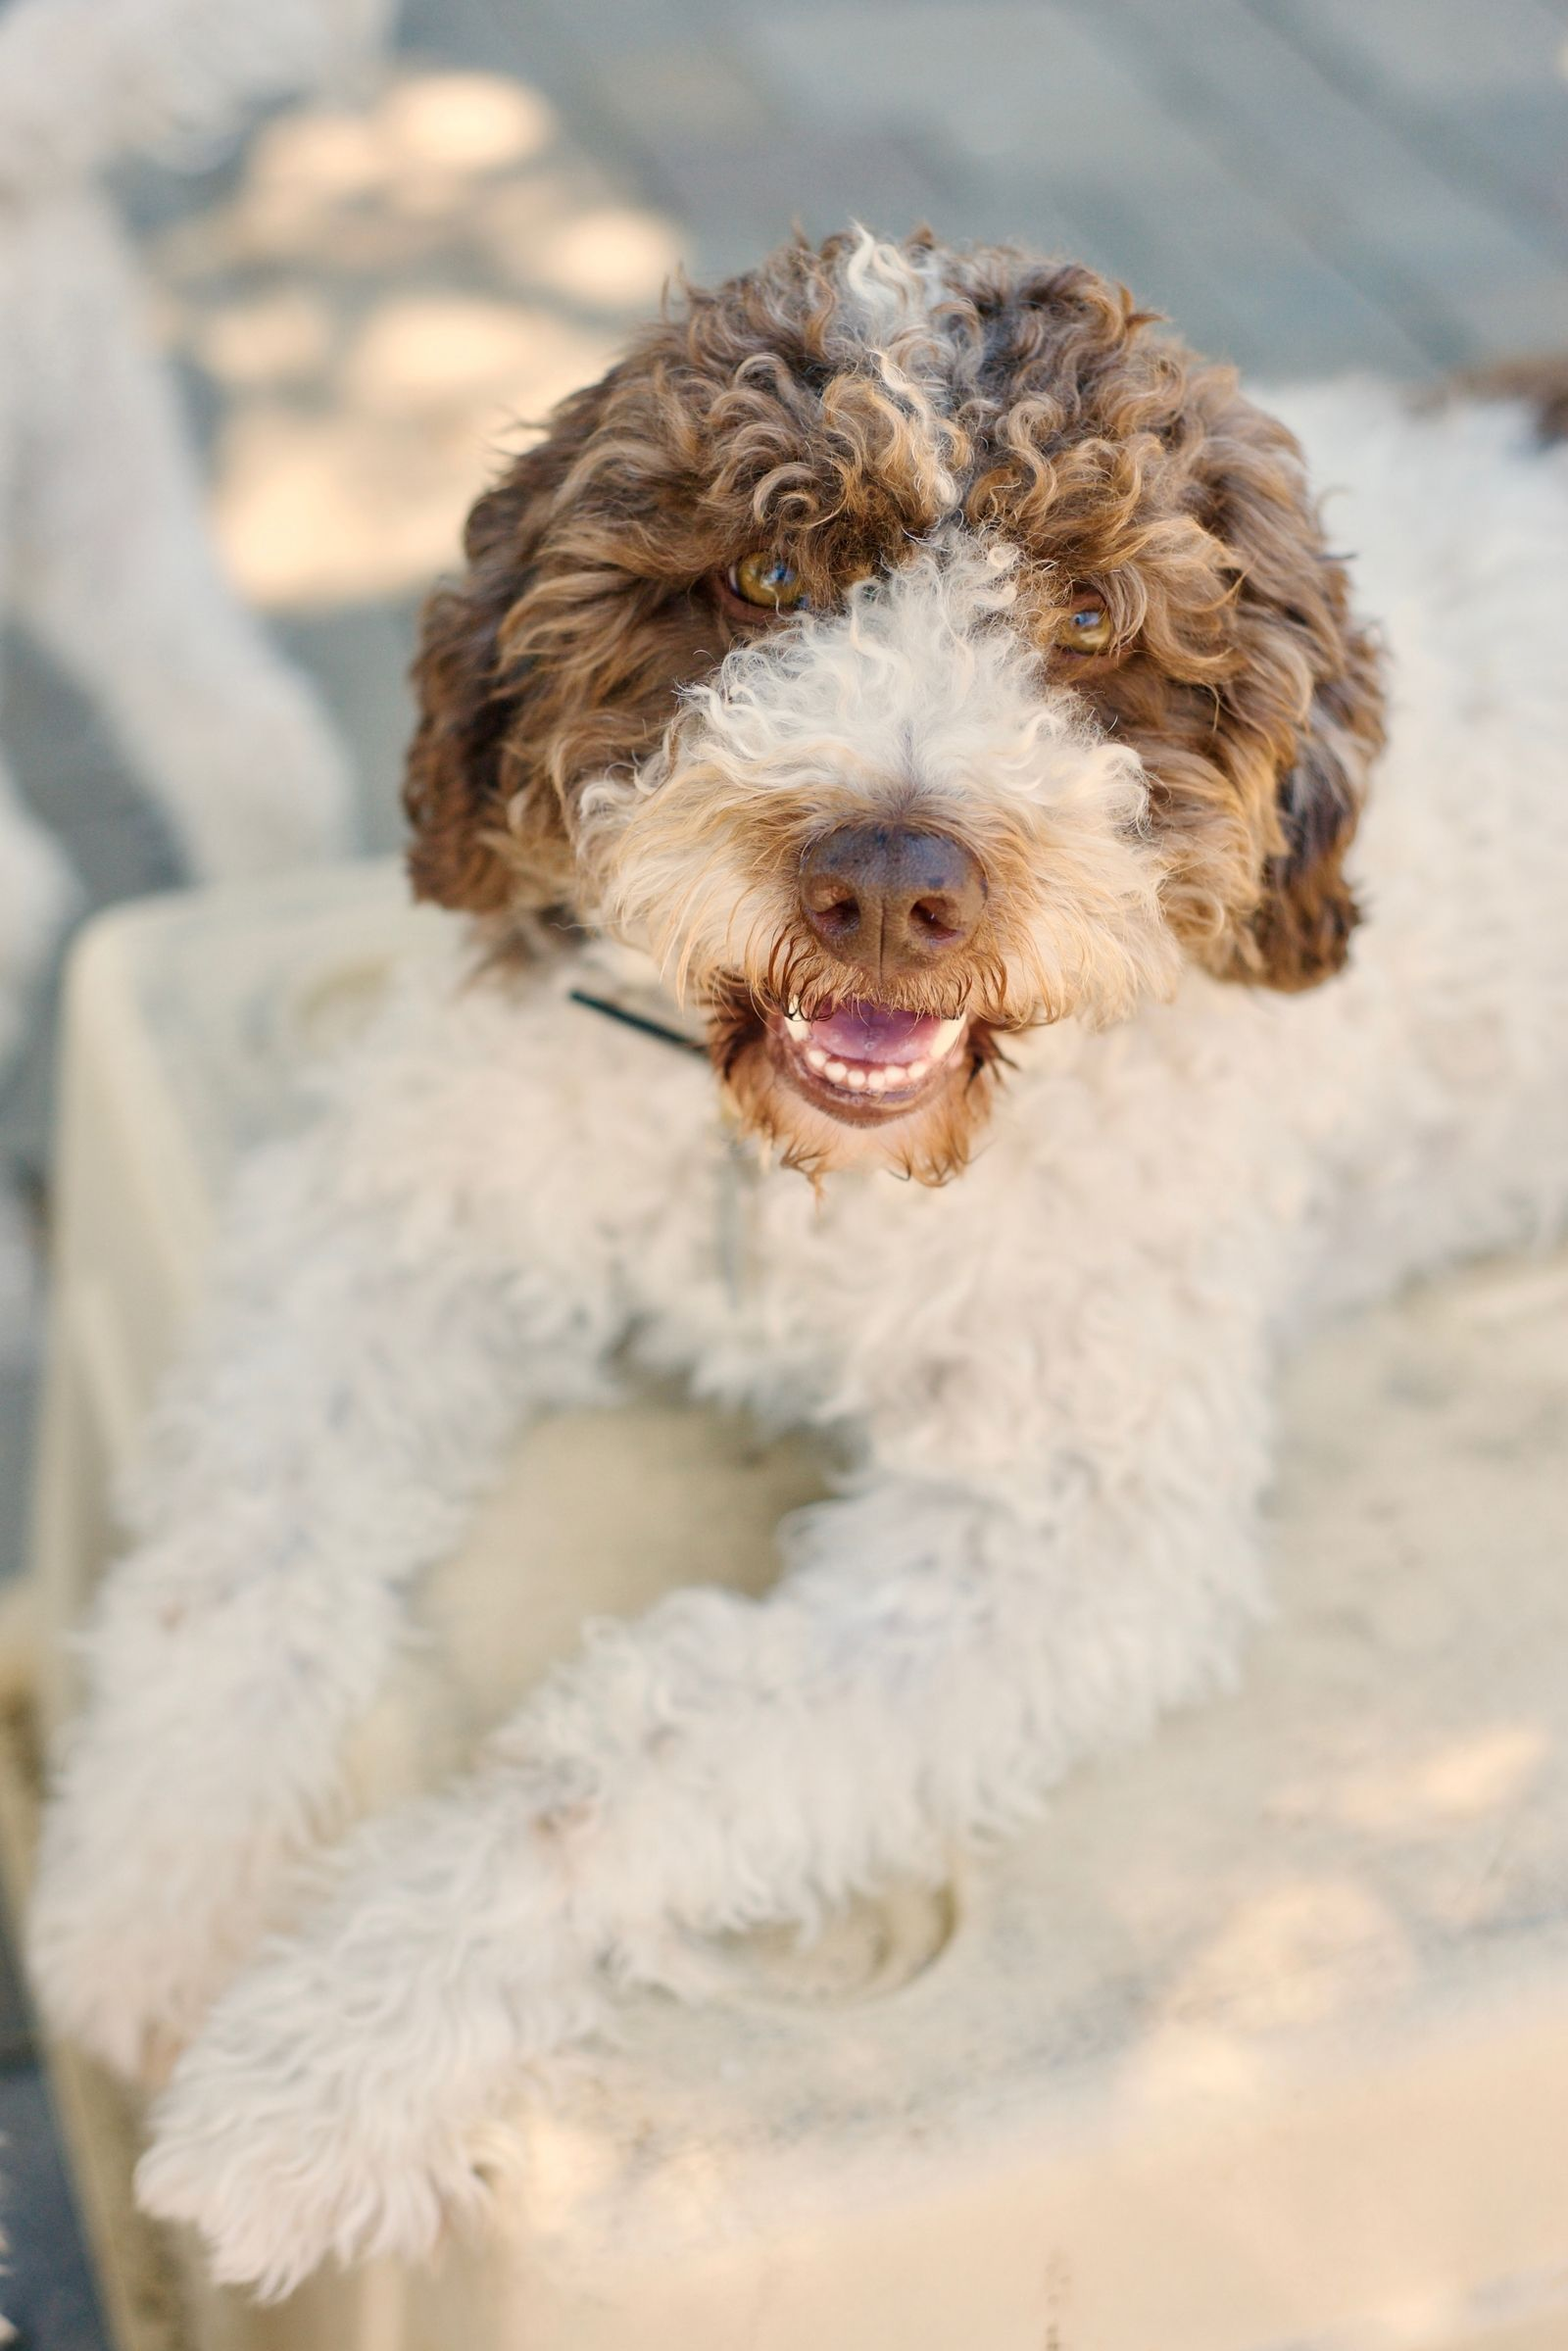 The 20 Cutest Dog Breeds That Don't Shed Dog breeds that